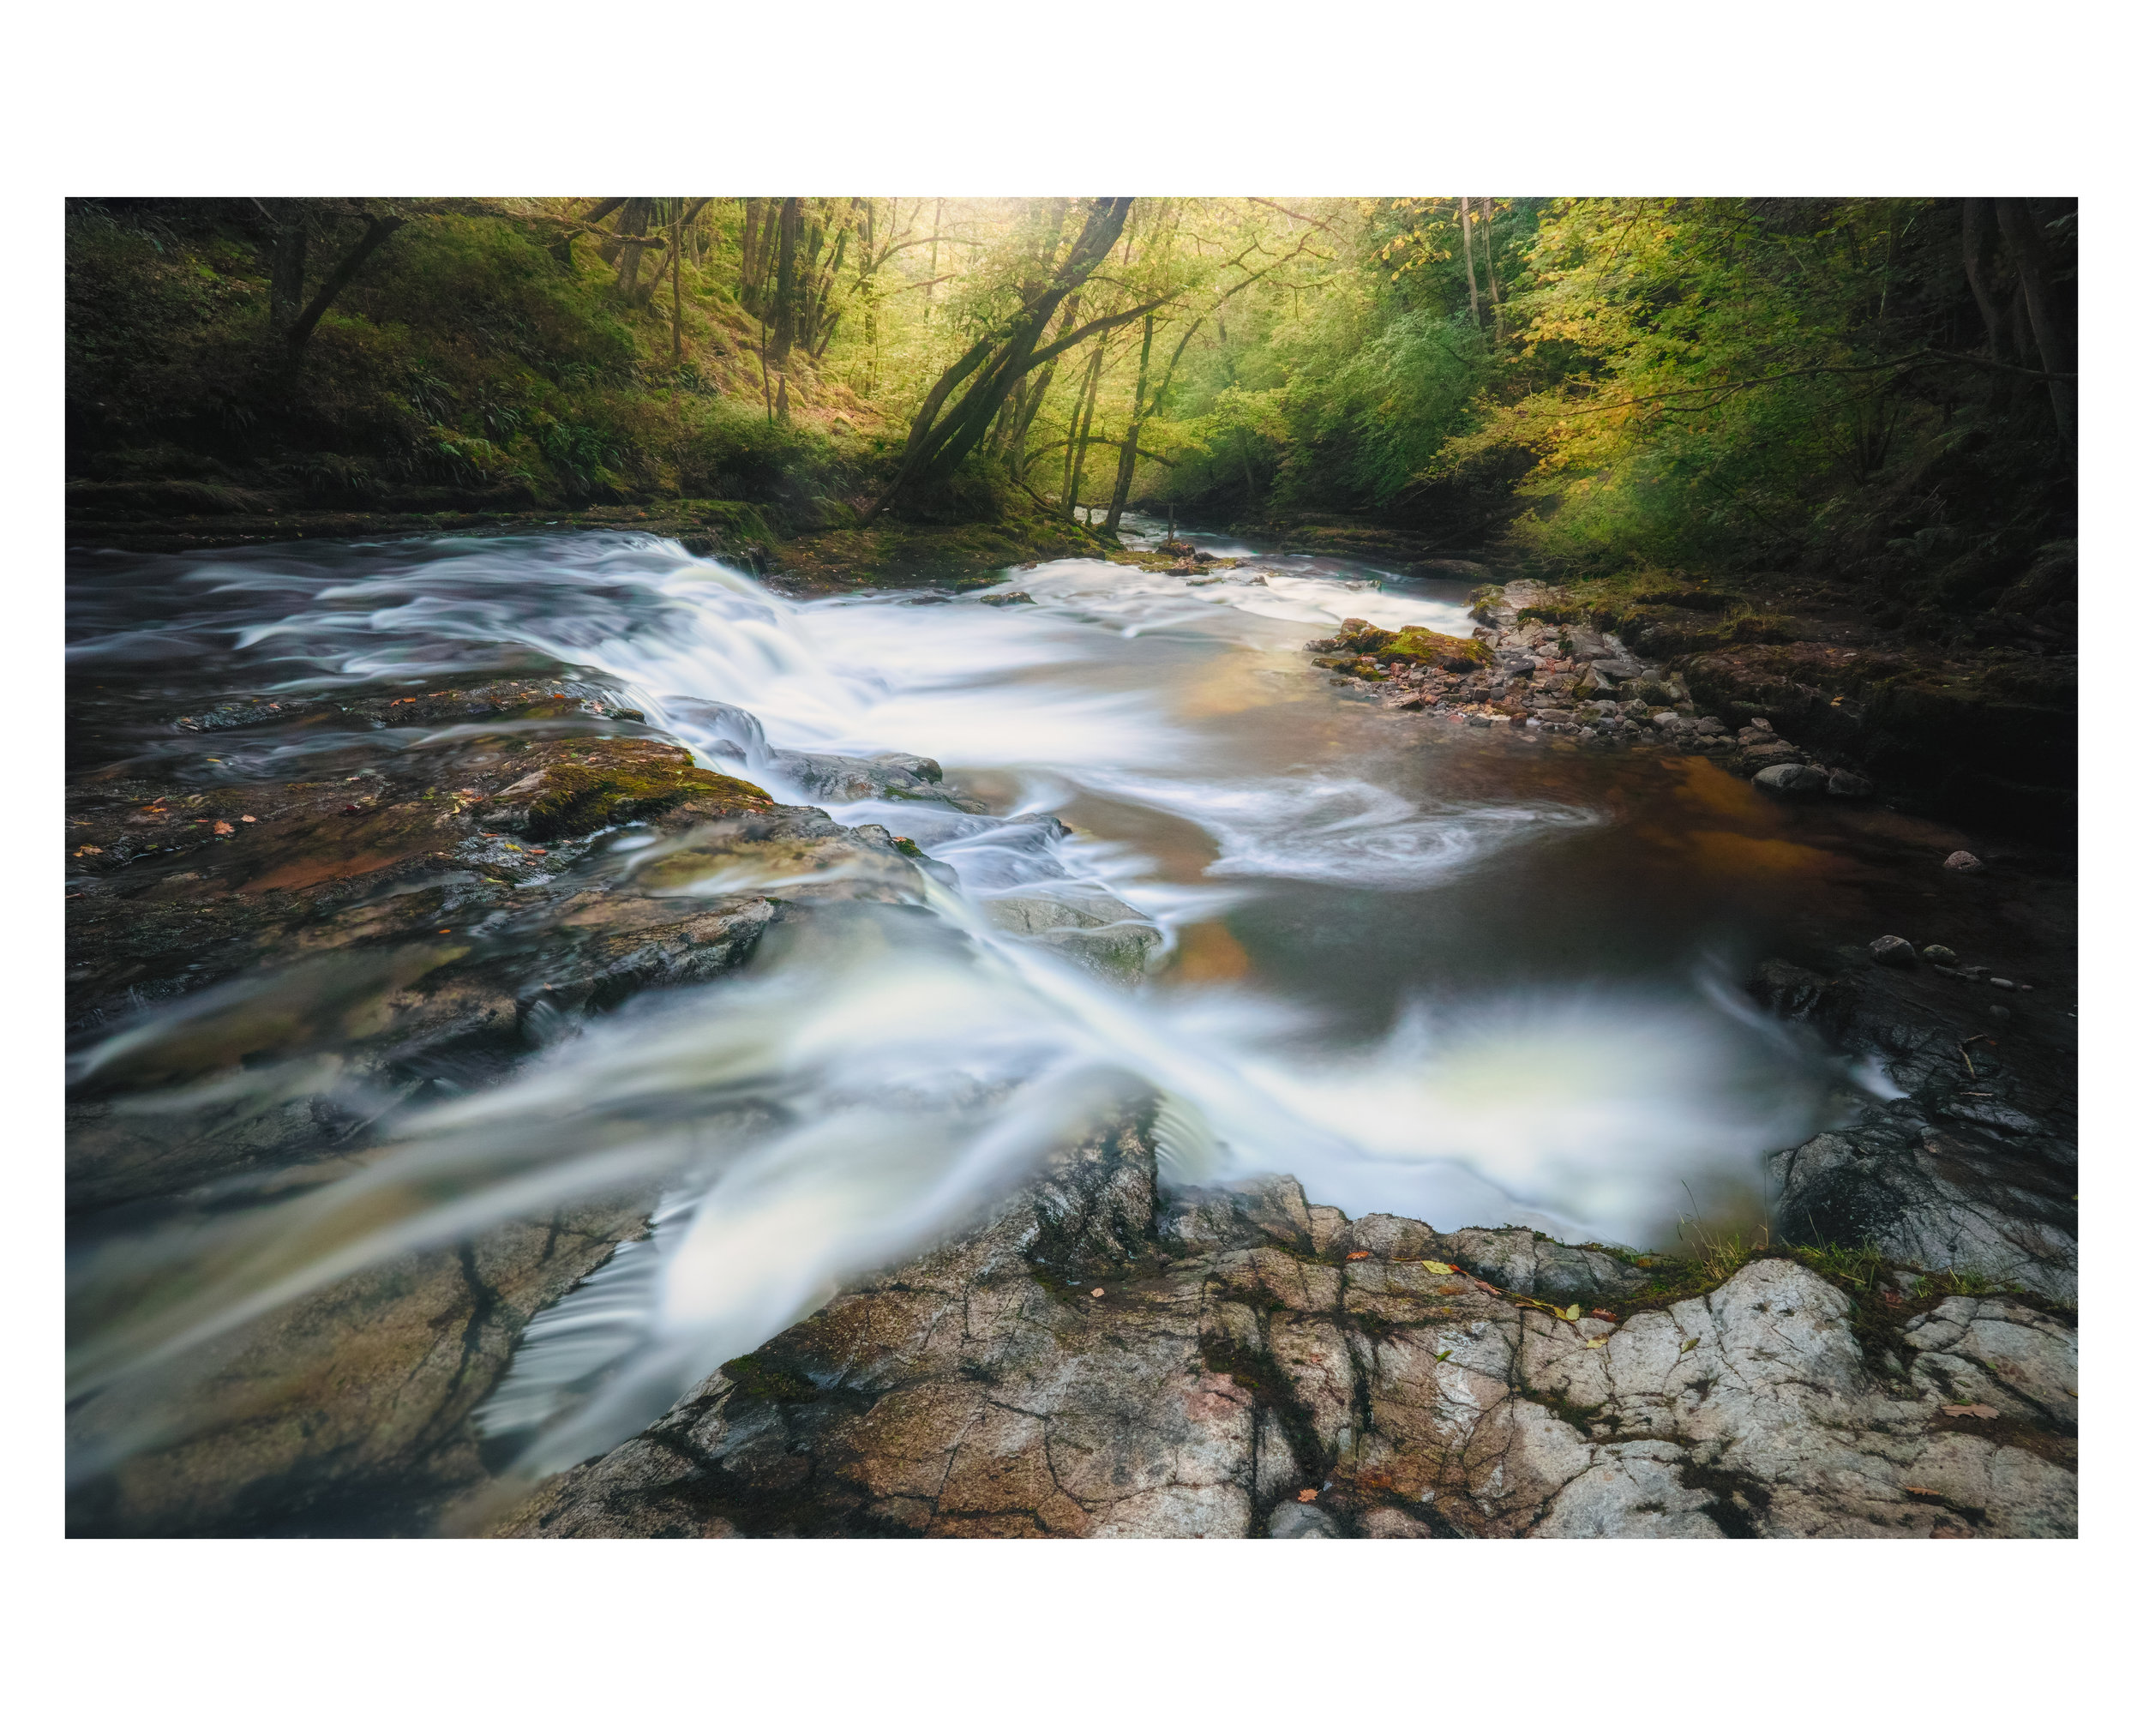 south_wales-brecon_beacons-fullmatte-06.jpg